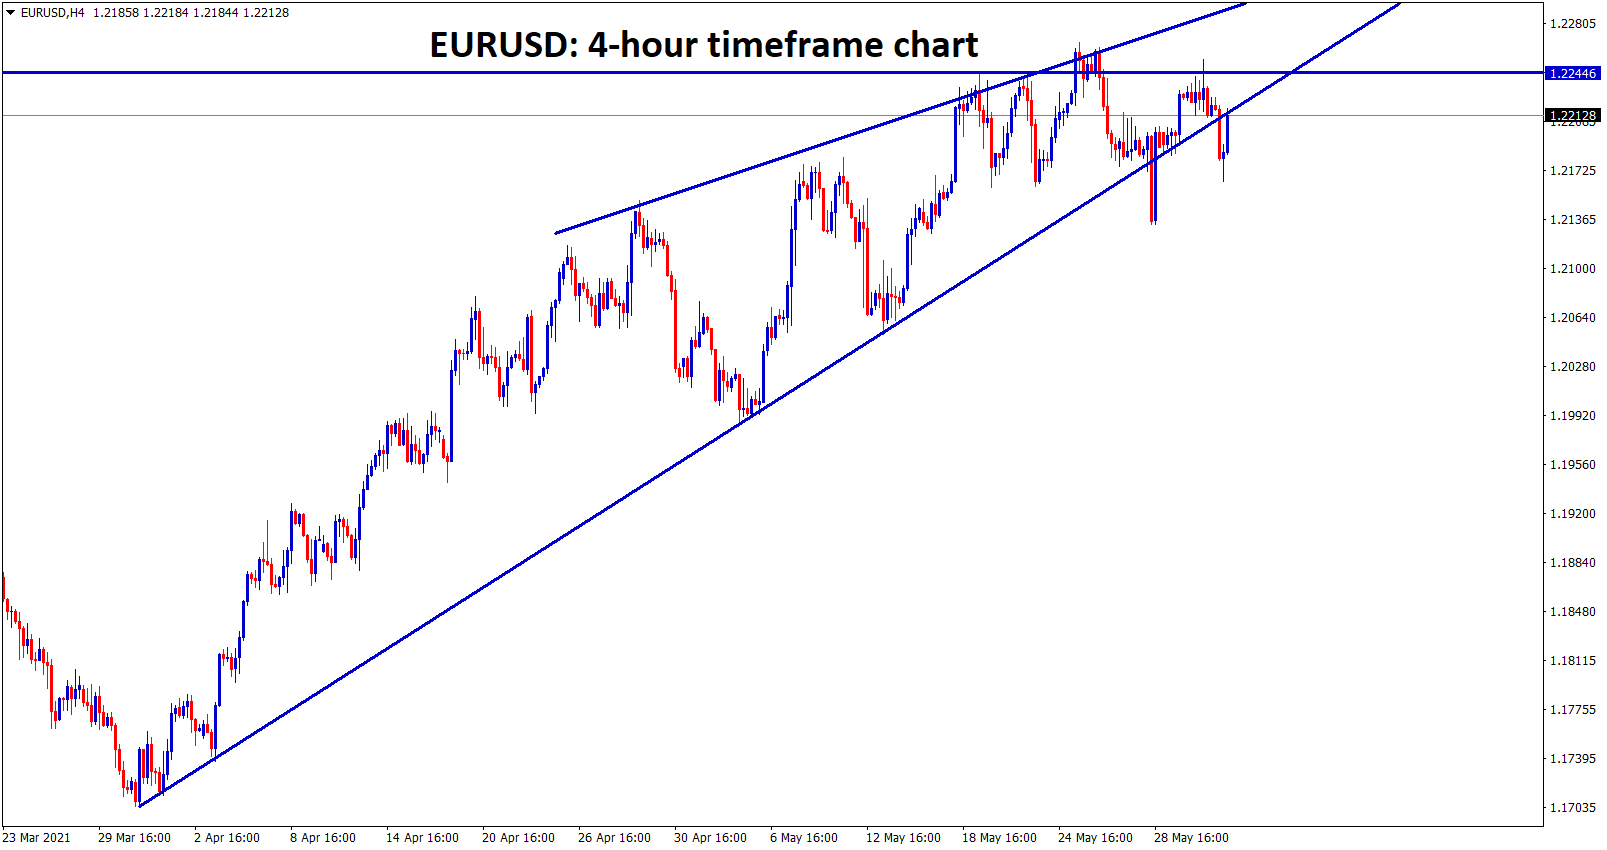 EURUSD is moving between the channel ranges wait for breakout from this channel